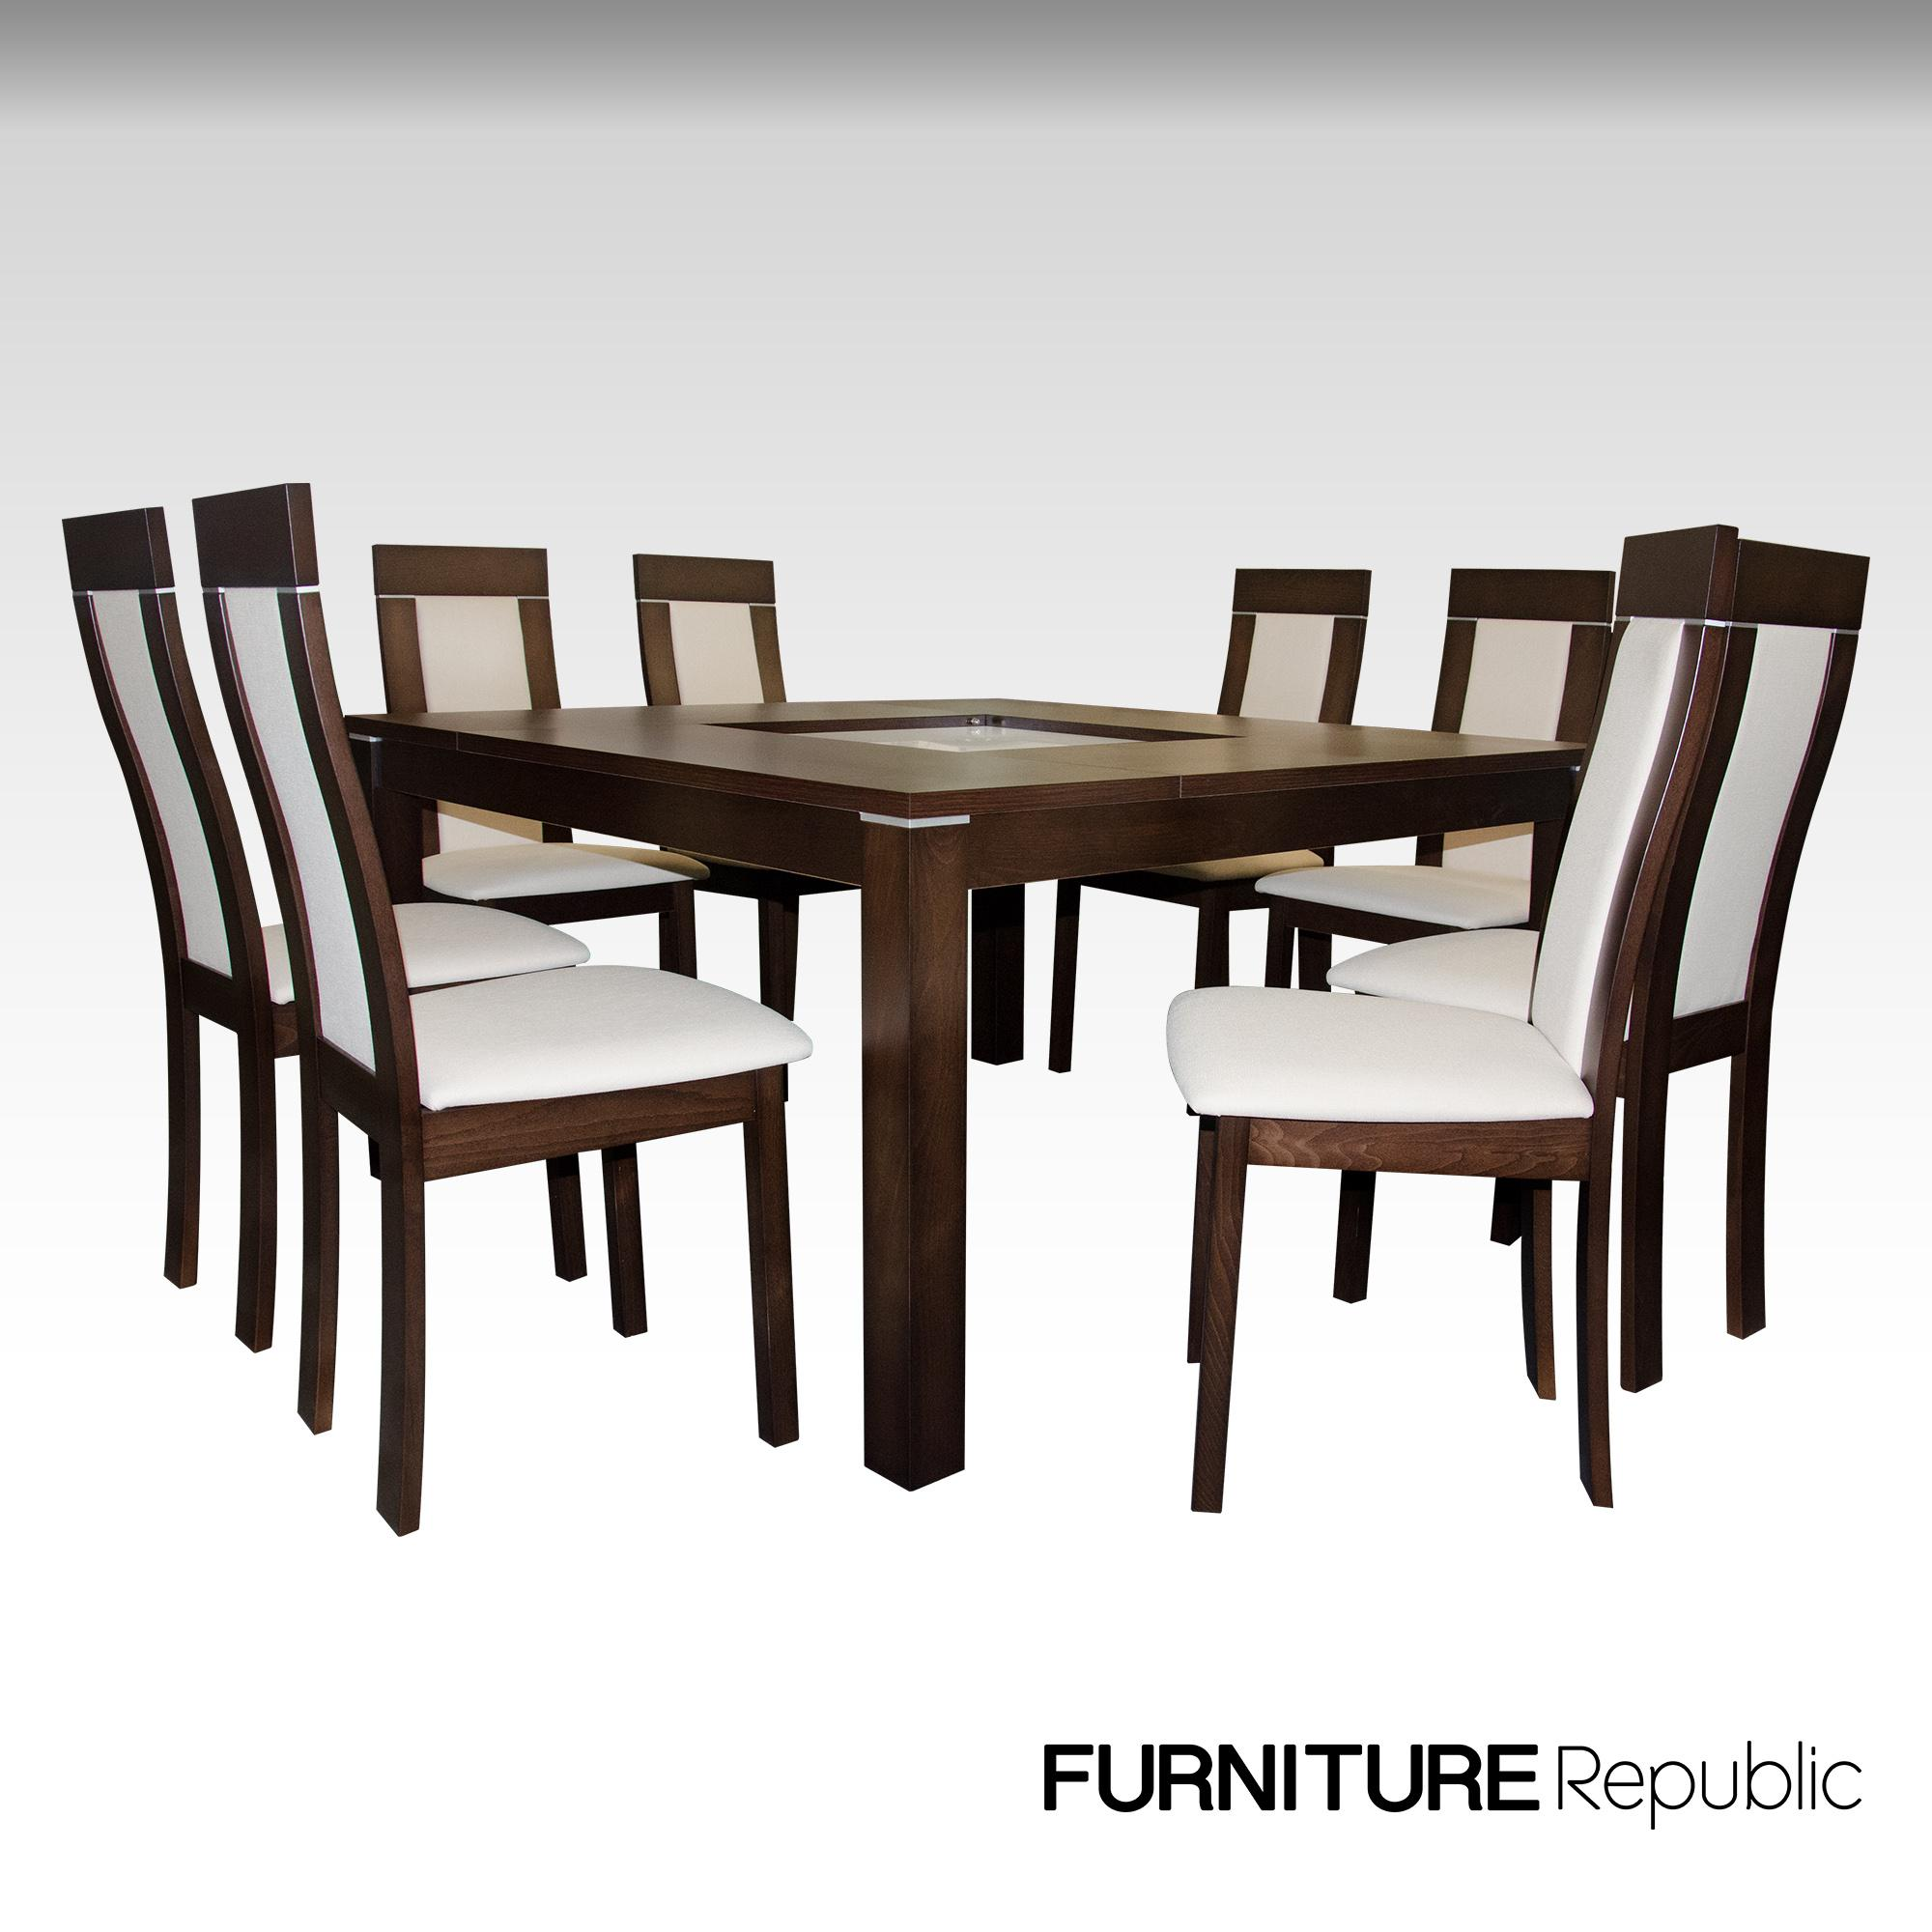 Furniture Republic Tempered Dining Set FDSTG49208S (8-Seater) c8f5dc177f